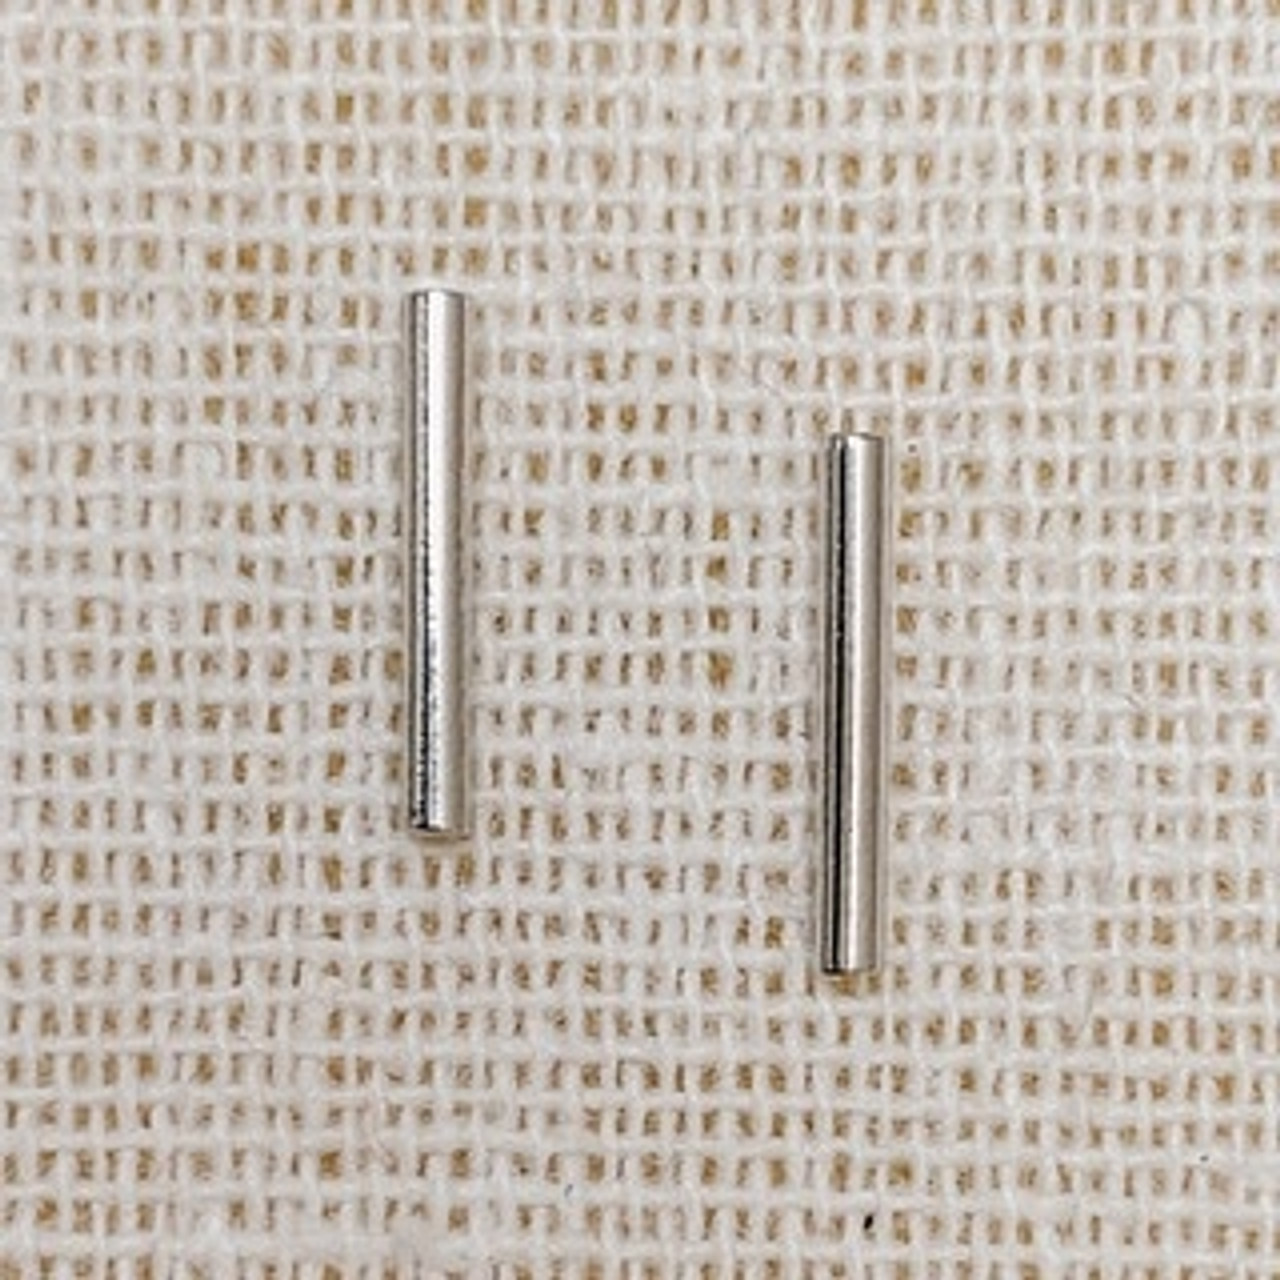 Dainty bar stud earrings in silver, Silver dipped, Sterling silver post, Nickel and lead free.